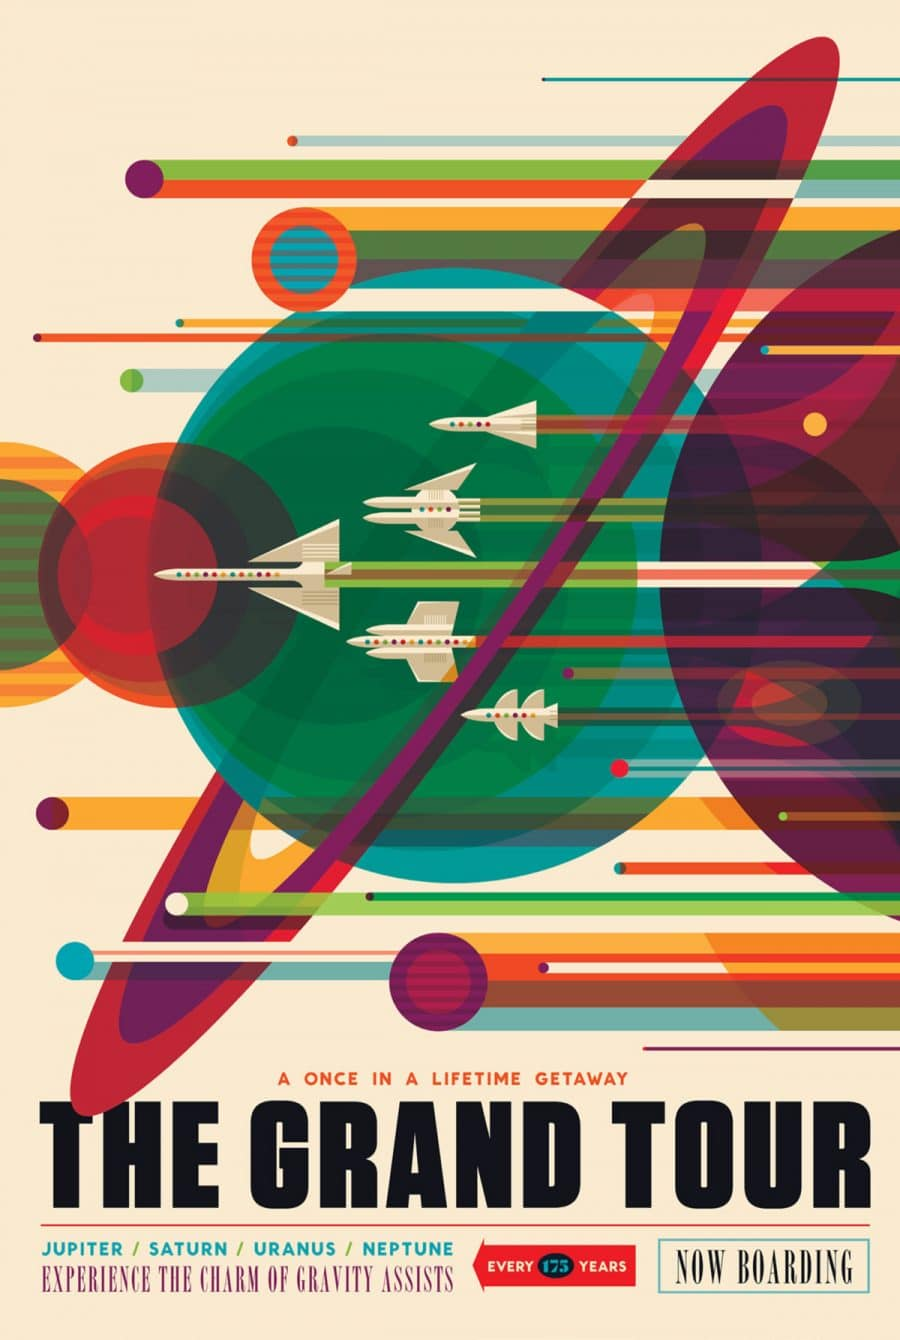 The Grand Tour NASA Voyager Mission Visions of the Future Poster Series Designed by JPL